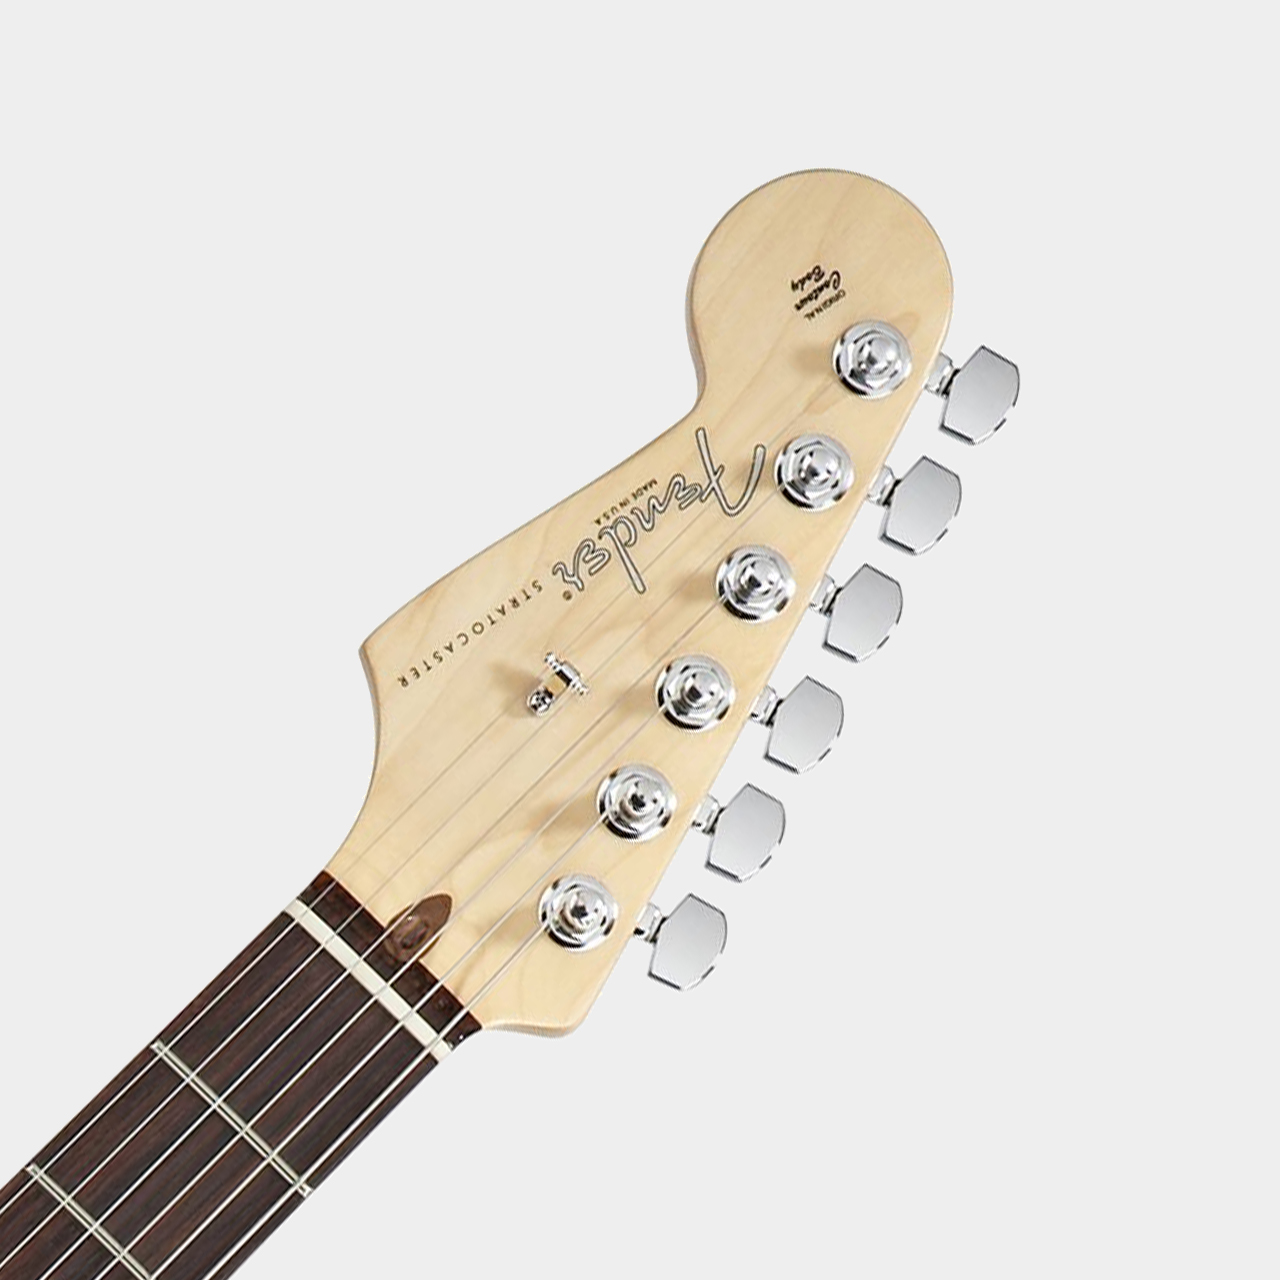 Fender American Standard Strat Lefthand RW OWH Headstock